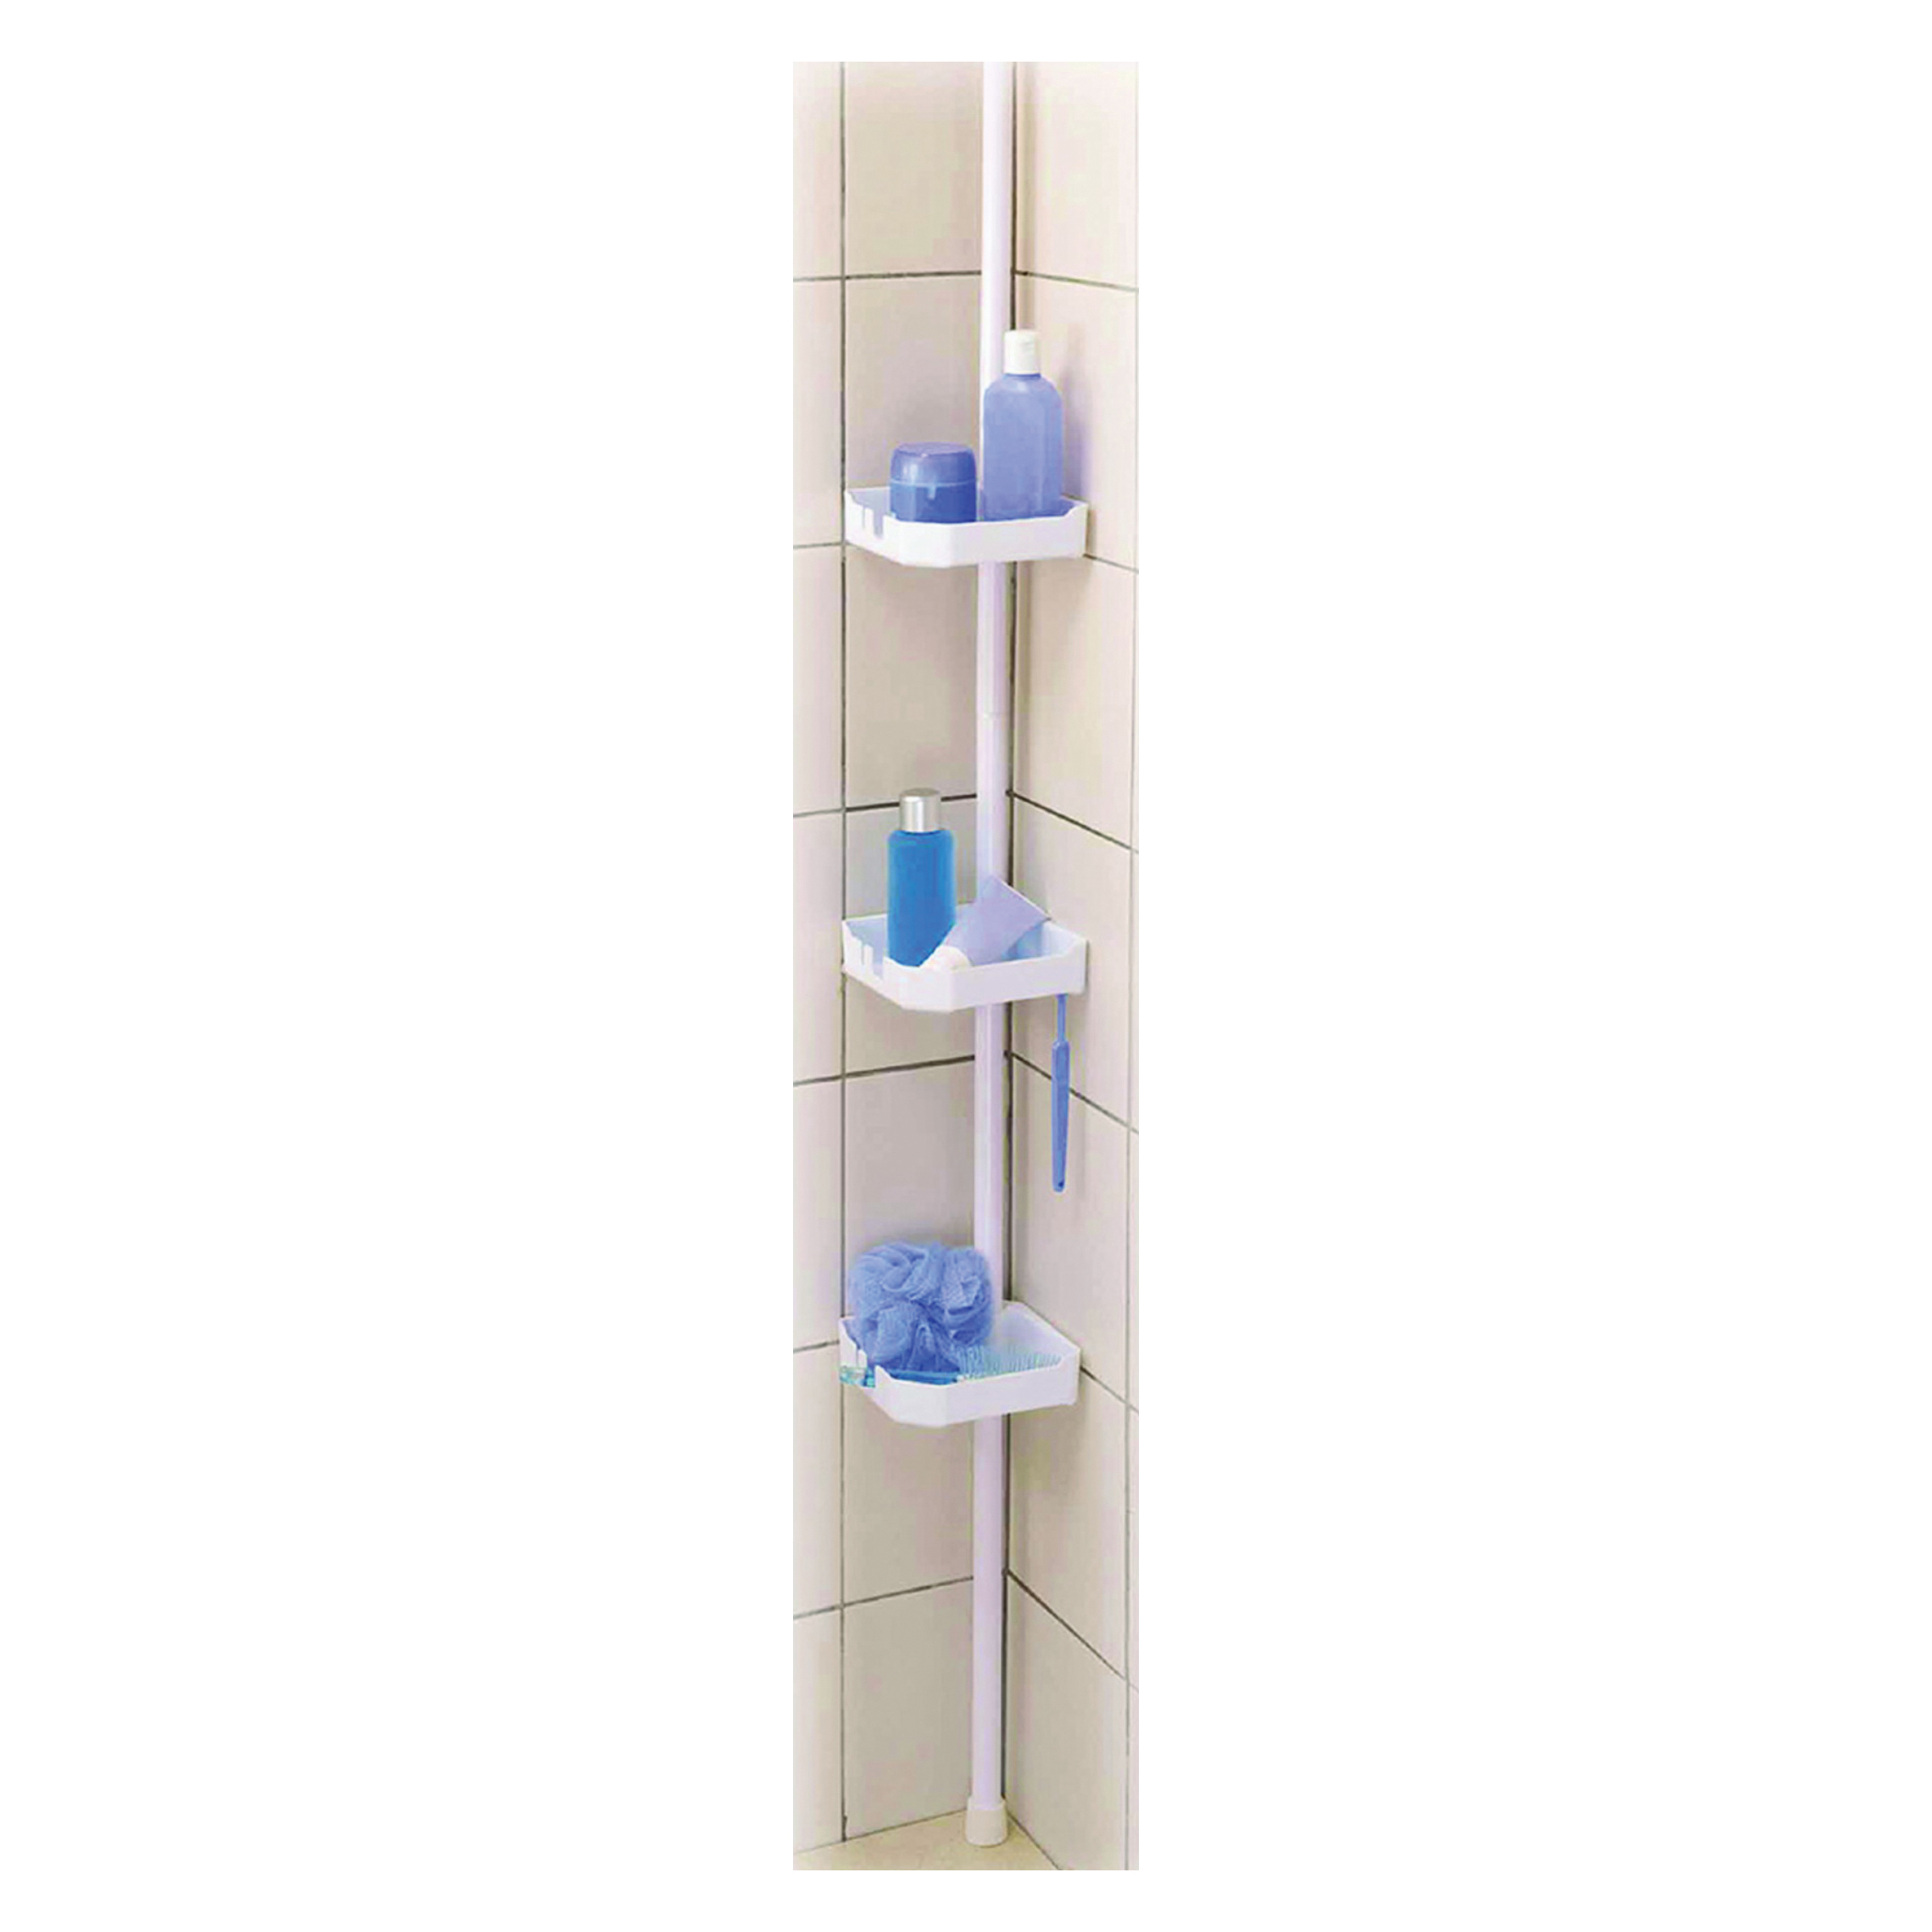 Picture of Simple Spaces TS38-PDC Shower Caddy, 3-Shelf, 7-5/8 in OAW, 97 in OAH, 6-1/2 in OAD